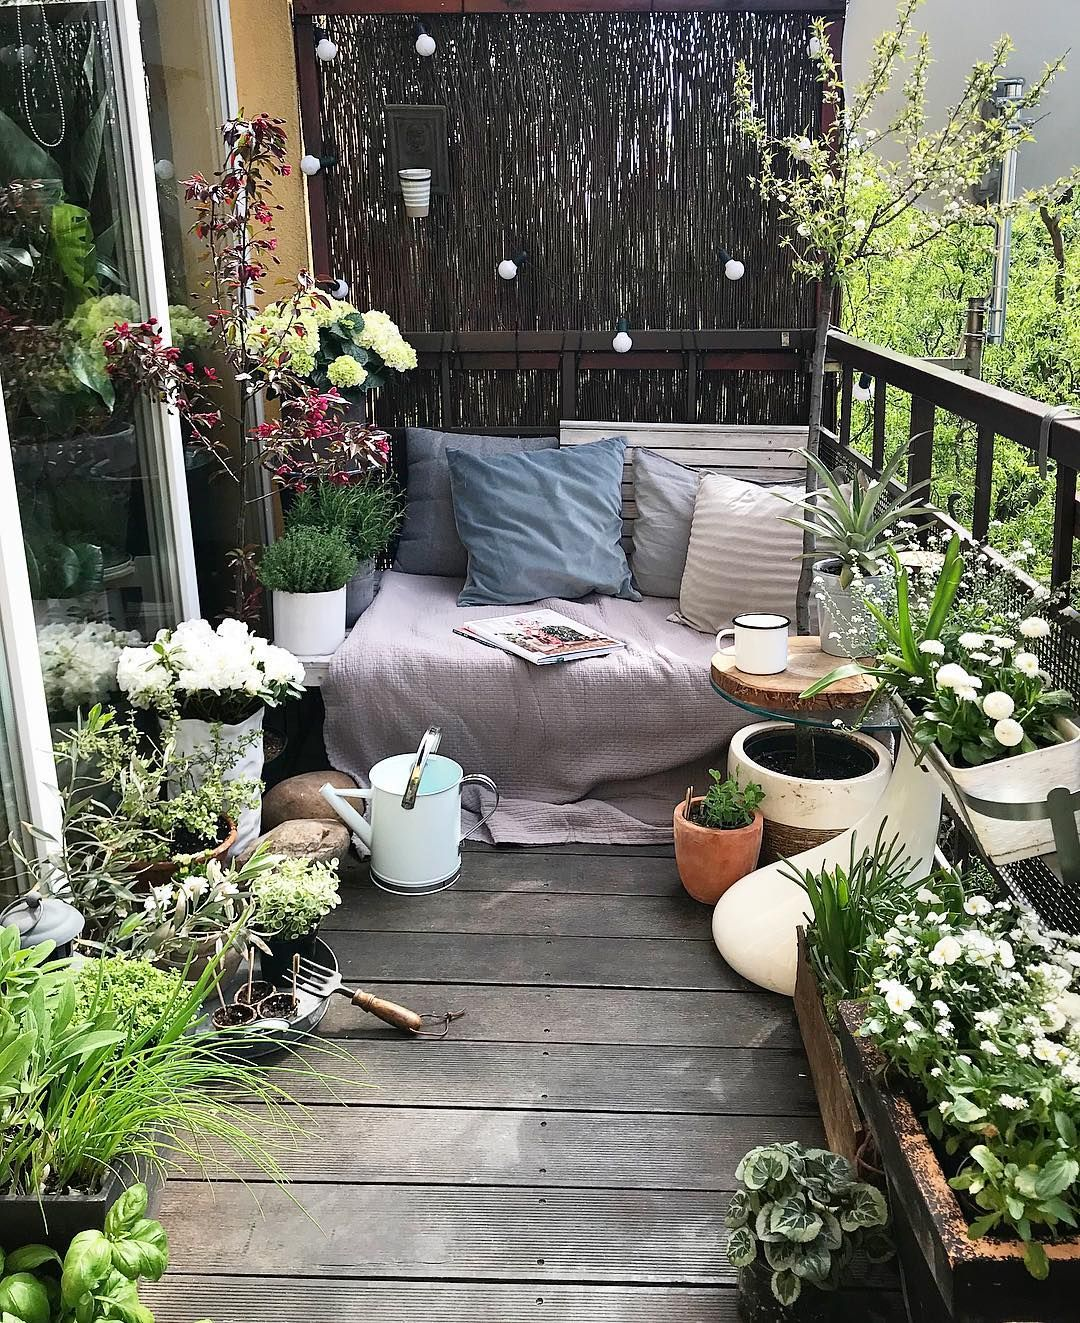 Small Balcony Garden Small Balcony Design Small Balcony Decor Small Balcony Garden